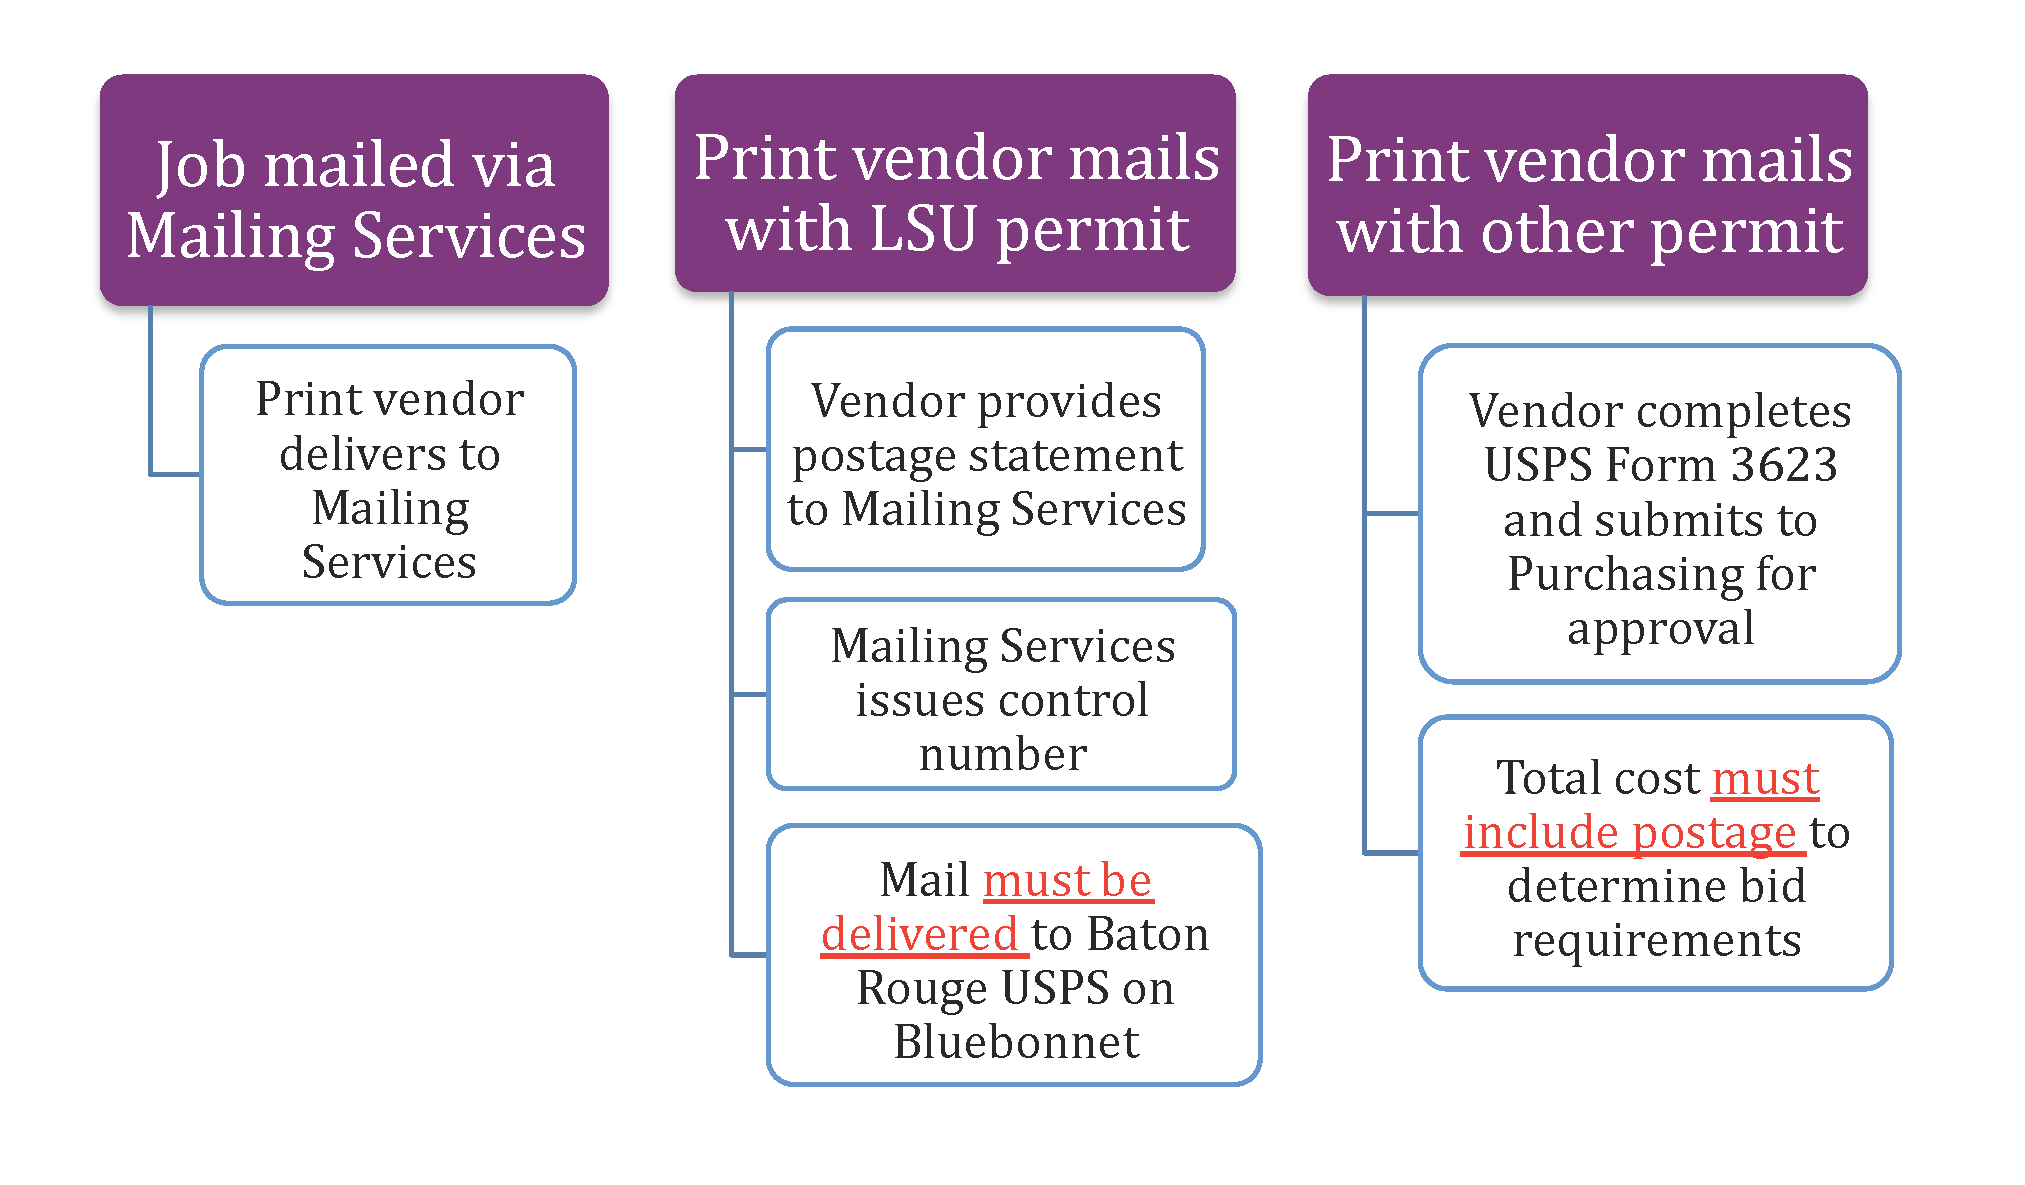 Image of chart to determine the process of a print job. The chart has three top sections: one is Job mailed via mailing services, the second is Print vendor mails with LSU permit, and the third is Print vendor mails with other permit. Under the first section, when mailing a job via mailing services, the print vendor delivers directly to mailing services. Under the second section, a vendor with an LSU permit, the following will happen: The vendor provides postage statement to mailing services, mailing services issues a control number, and the resulting mail must be delivered to baton rouge USPS on blue bonnet. In the third section, a vendor with a different permit, the following will happen: vendor completes USPS form 3623 and submits to purchasing for approval, and total cost must include postage to determine bid requirements.